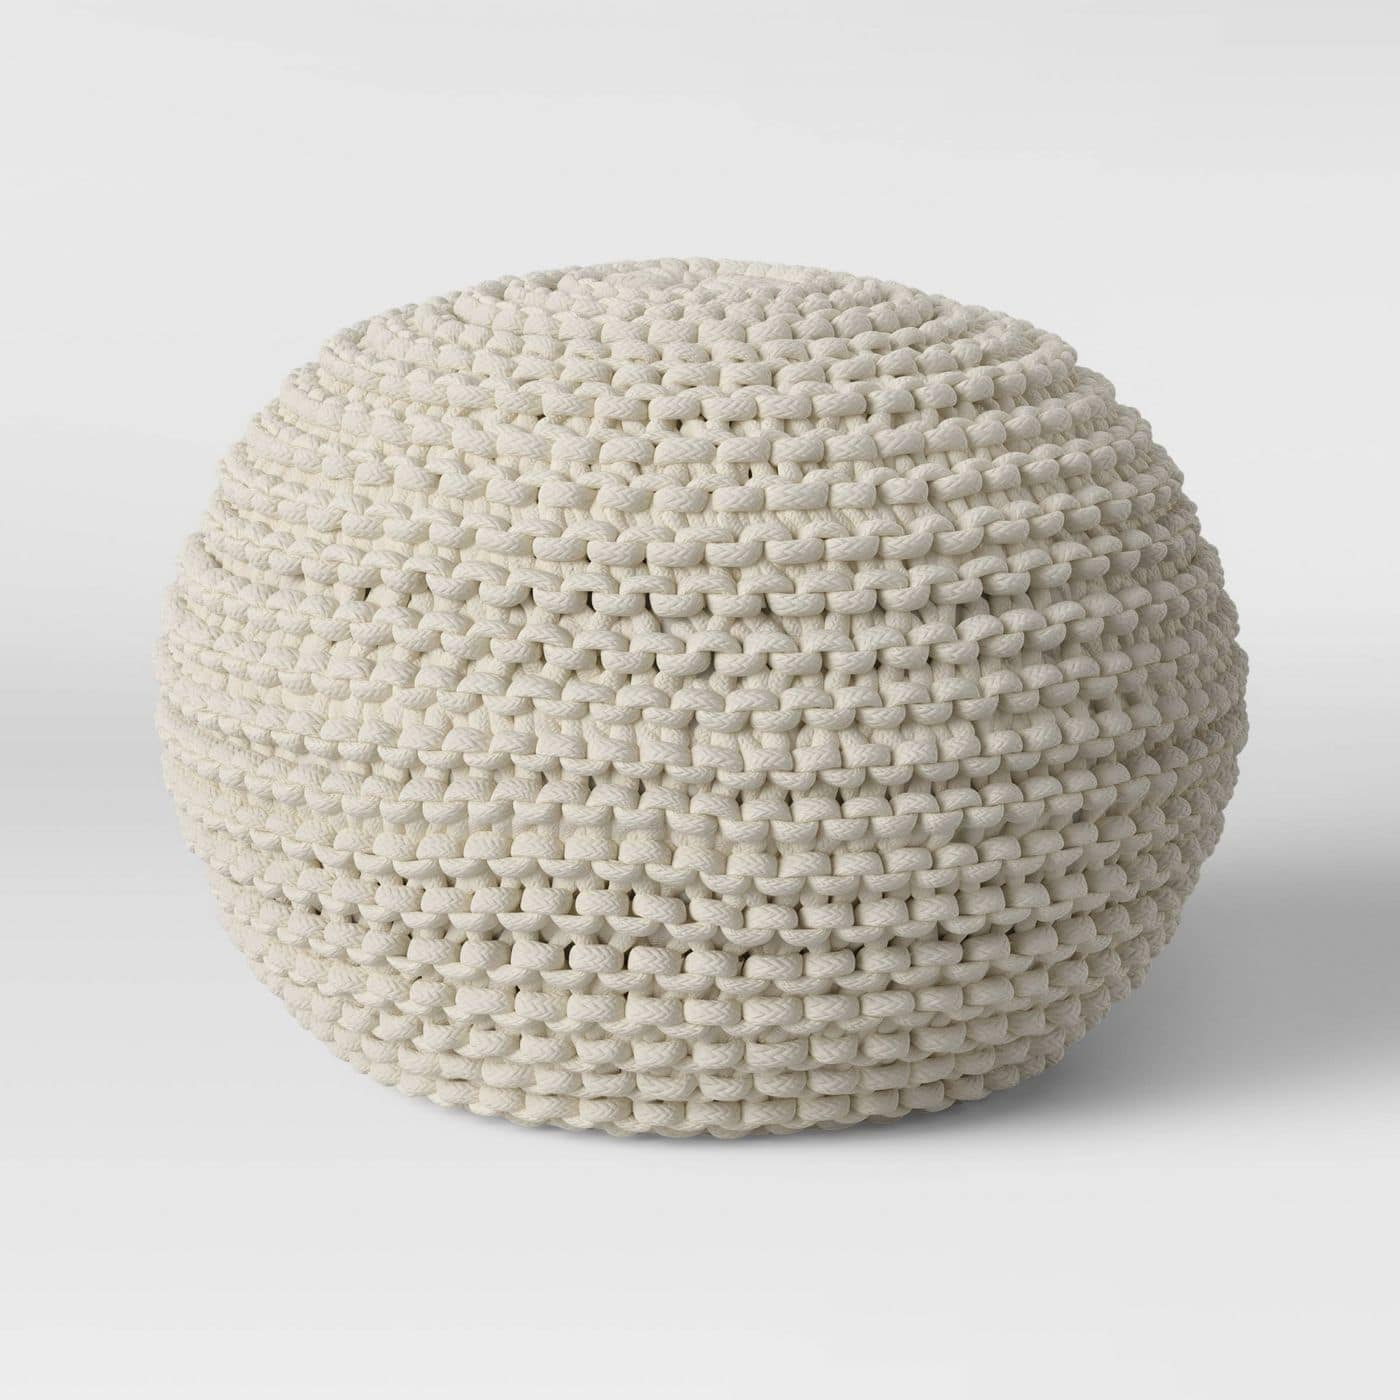 Threshold Cloverly Chunky Knit Pouf Ottoman (Blue or Cream) $39 + Free Shipping